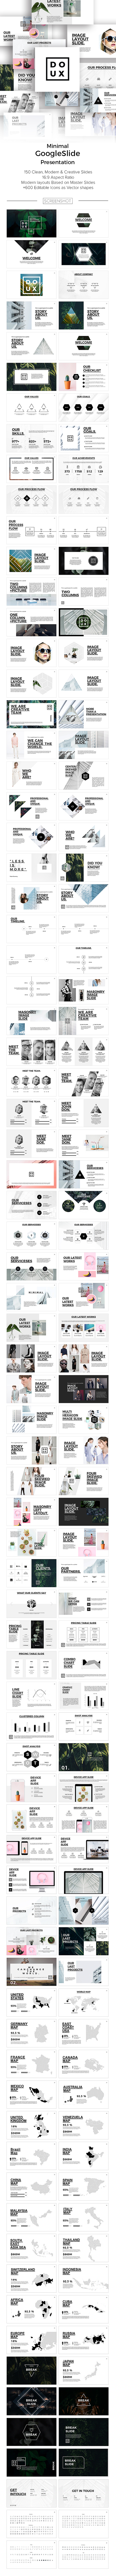 Doux Minimal Google Slide Presentation - Google Slides Presentation Templates